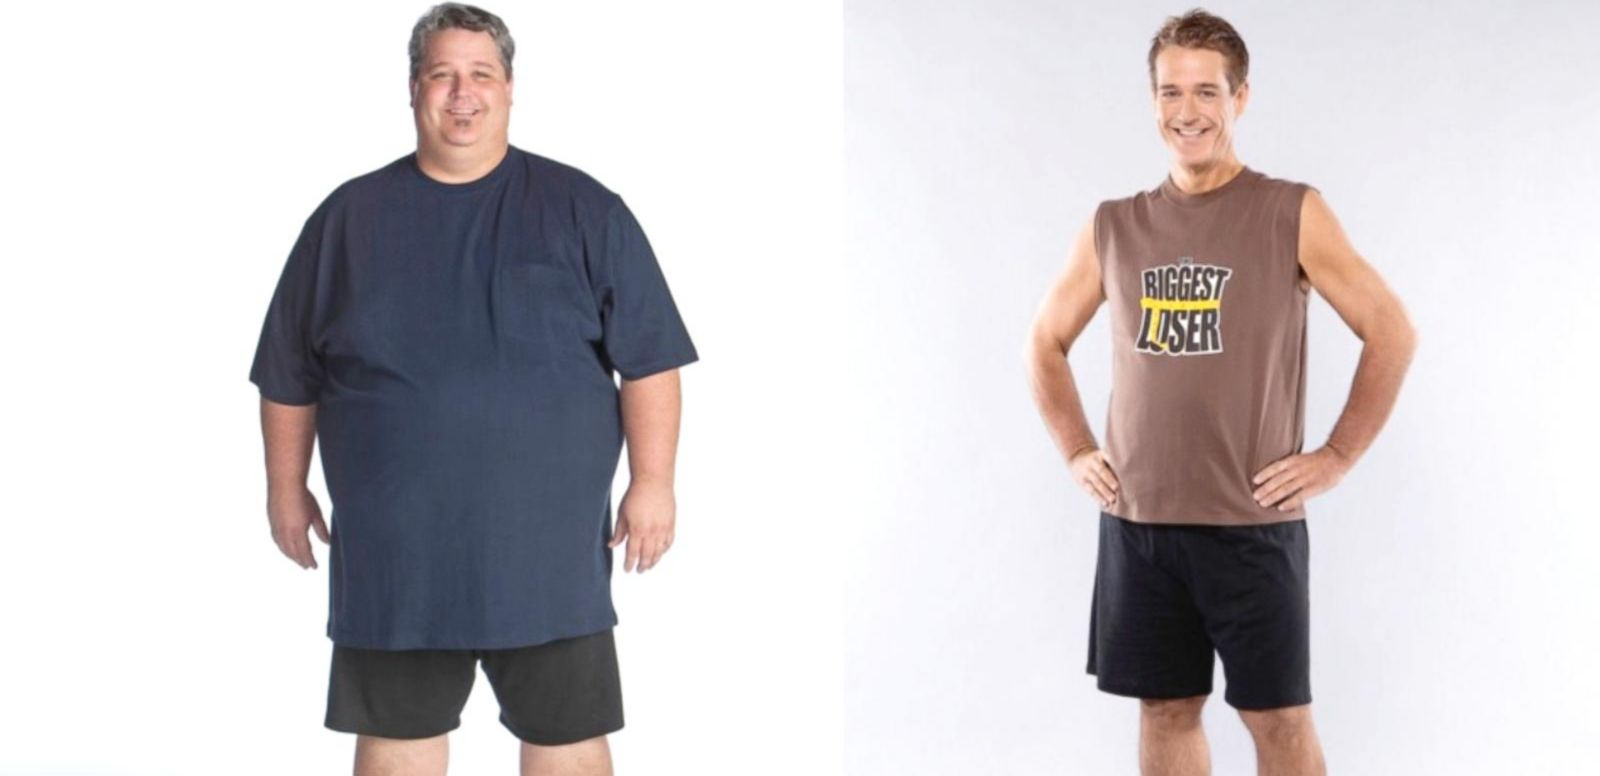 VIDEO: New Study Reveals Why 'Biggest Loser' Winners Often Regain Weight